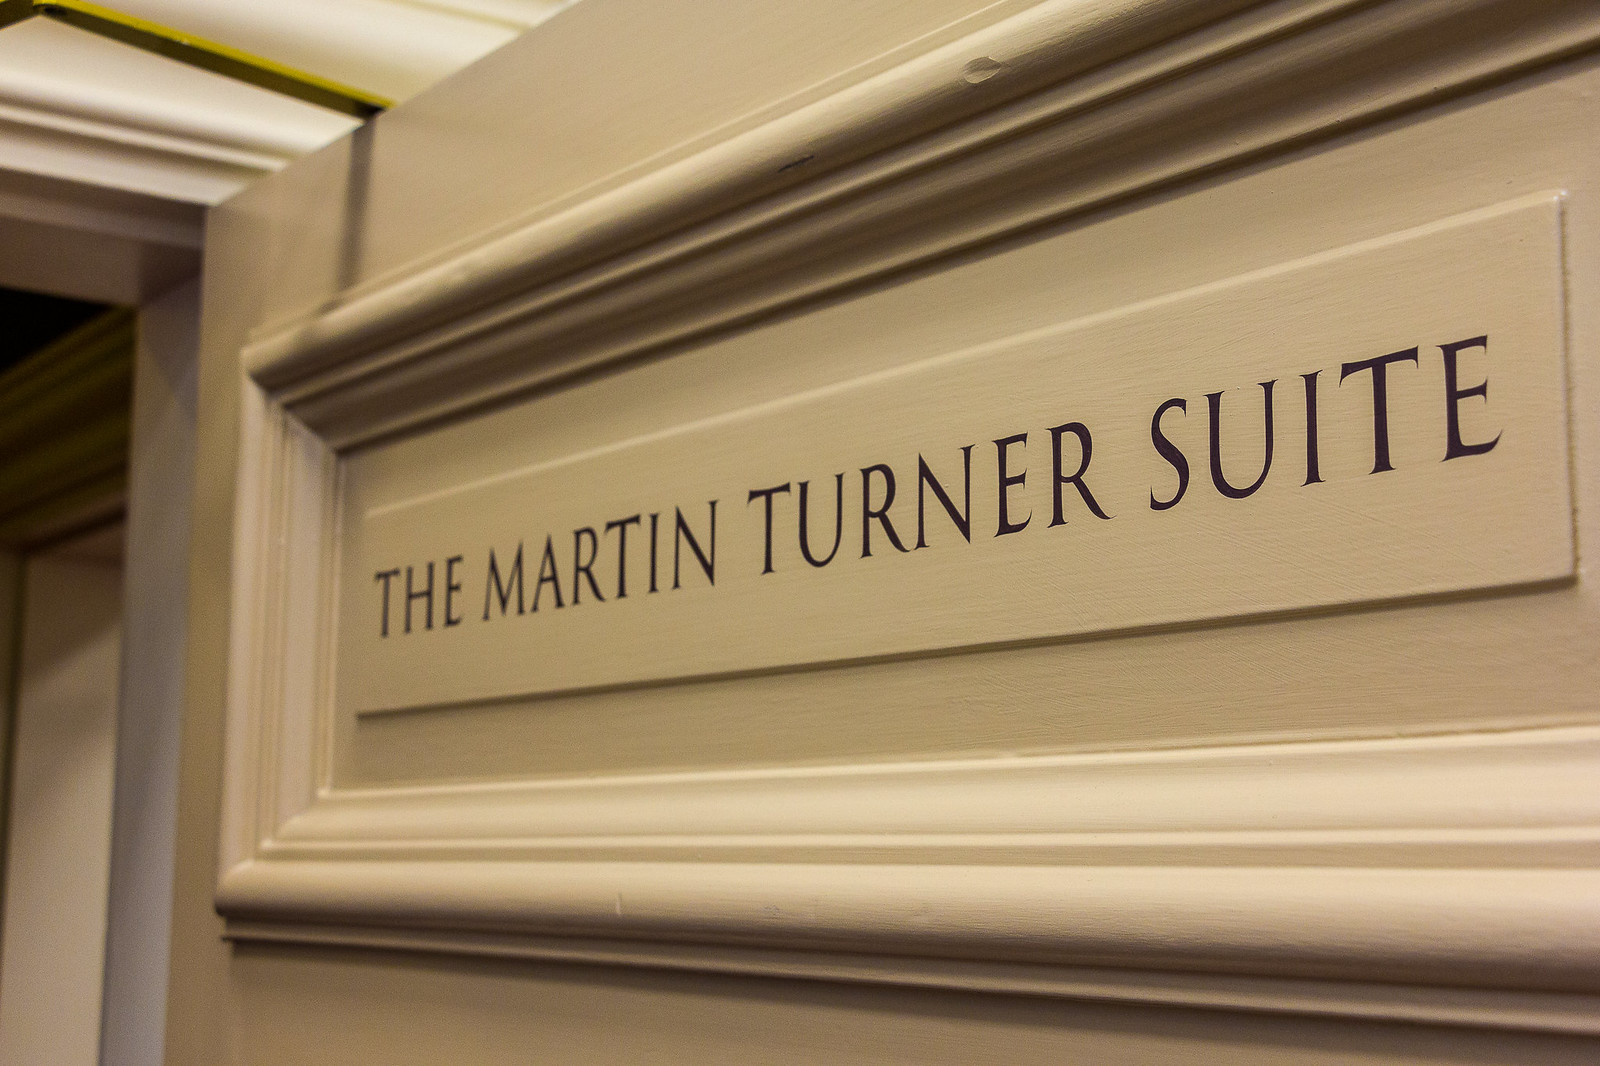 Dedication of the Martin Turner Suite